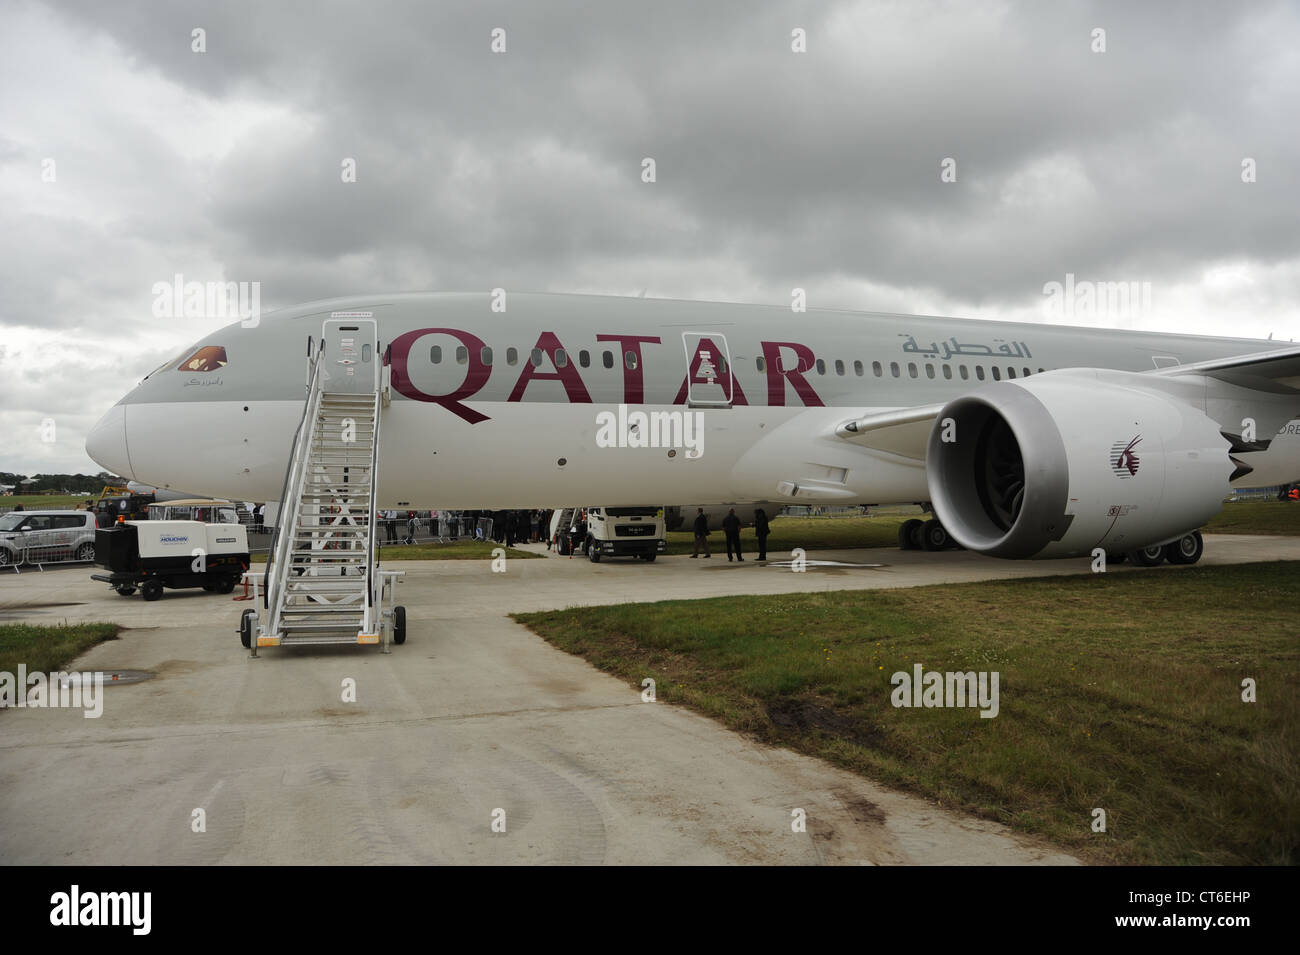 Qatar Airways hopes to fly the first Boeing 787 to Heathrow from August 2012. It is pictured at the Farnborough - Stock Image